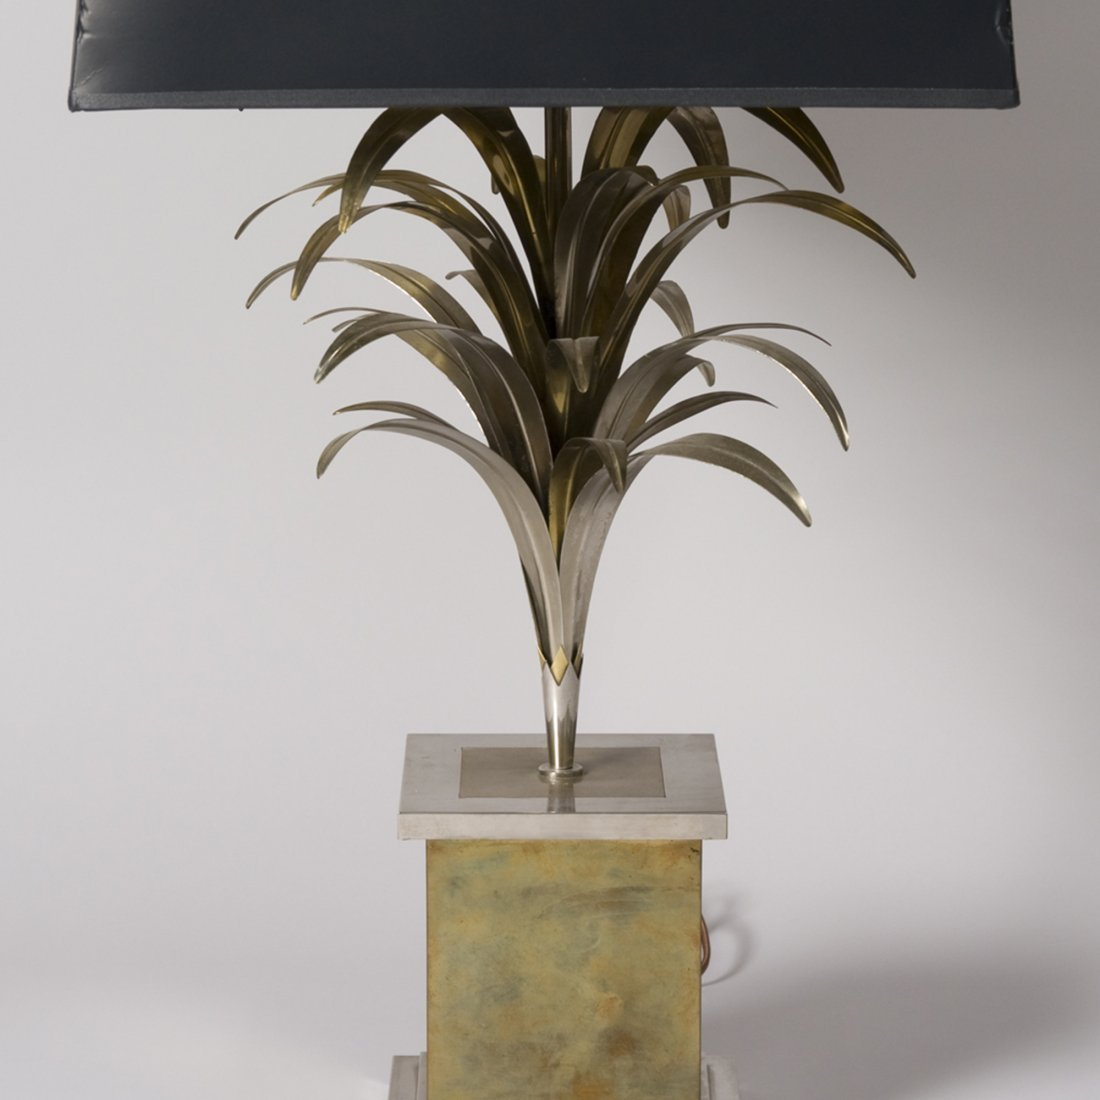 Brass Palm Form Table Lamp - 3